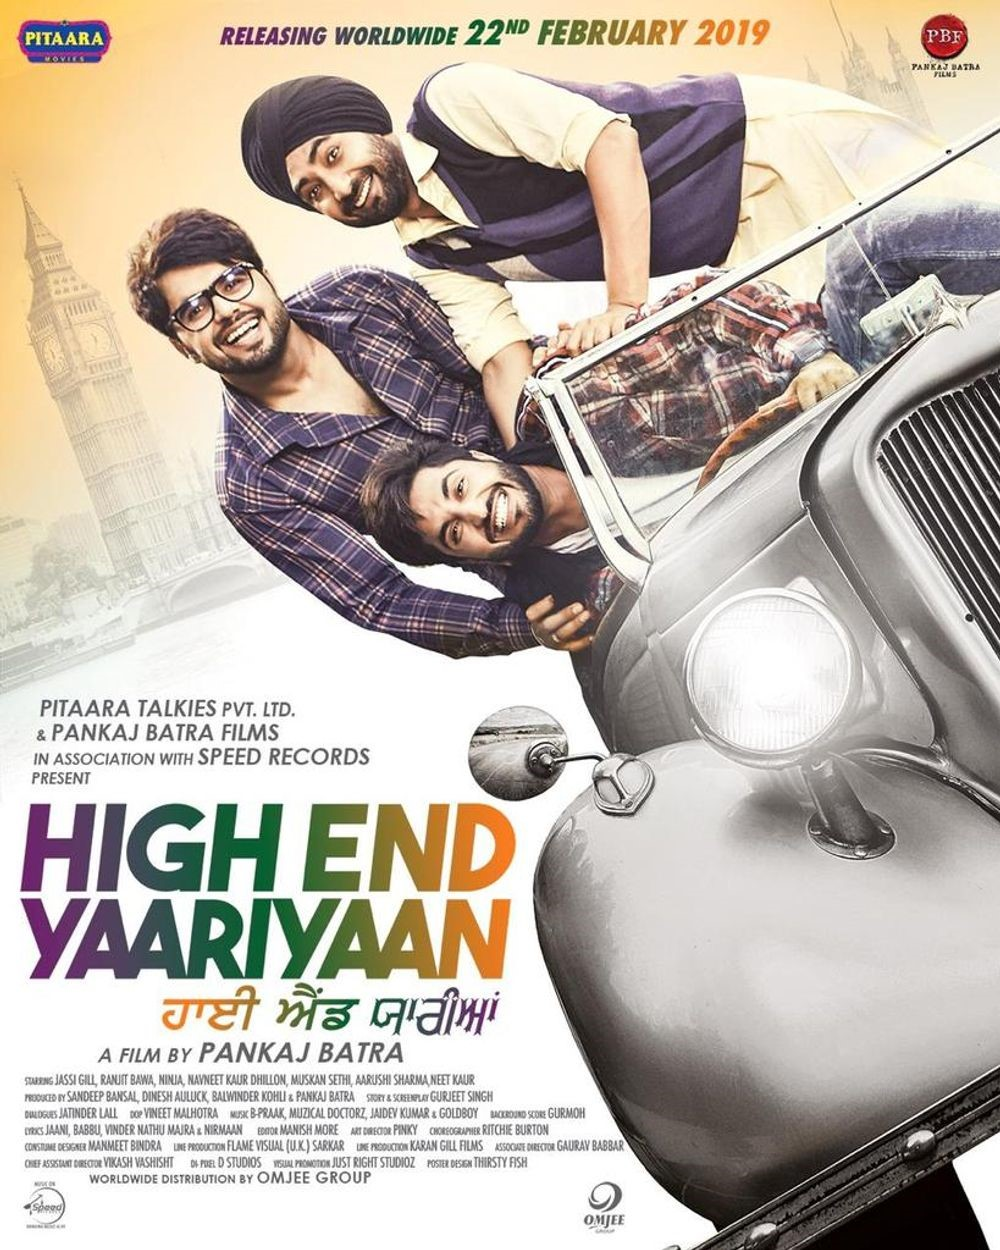 Movie poster depicting the title High End Yaariyaan and stars Jassie Gill, Ranjit Bawa and Ninja in a silver Rolls Royce with Big Ben in the background.